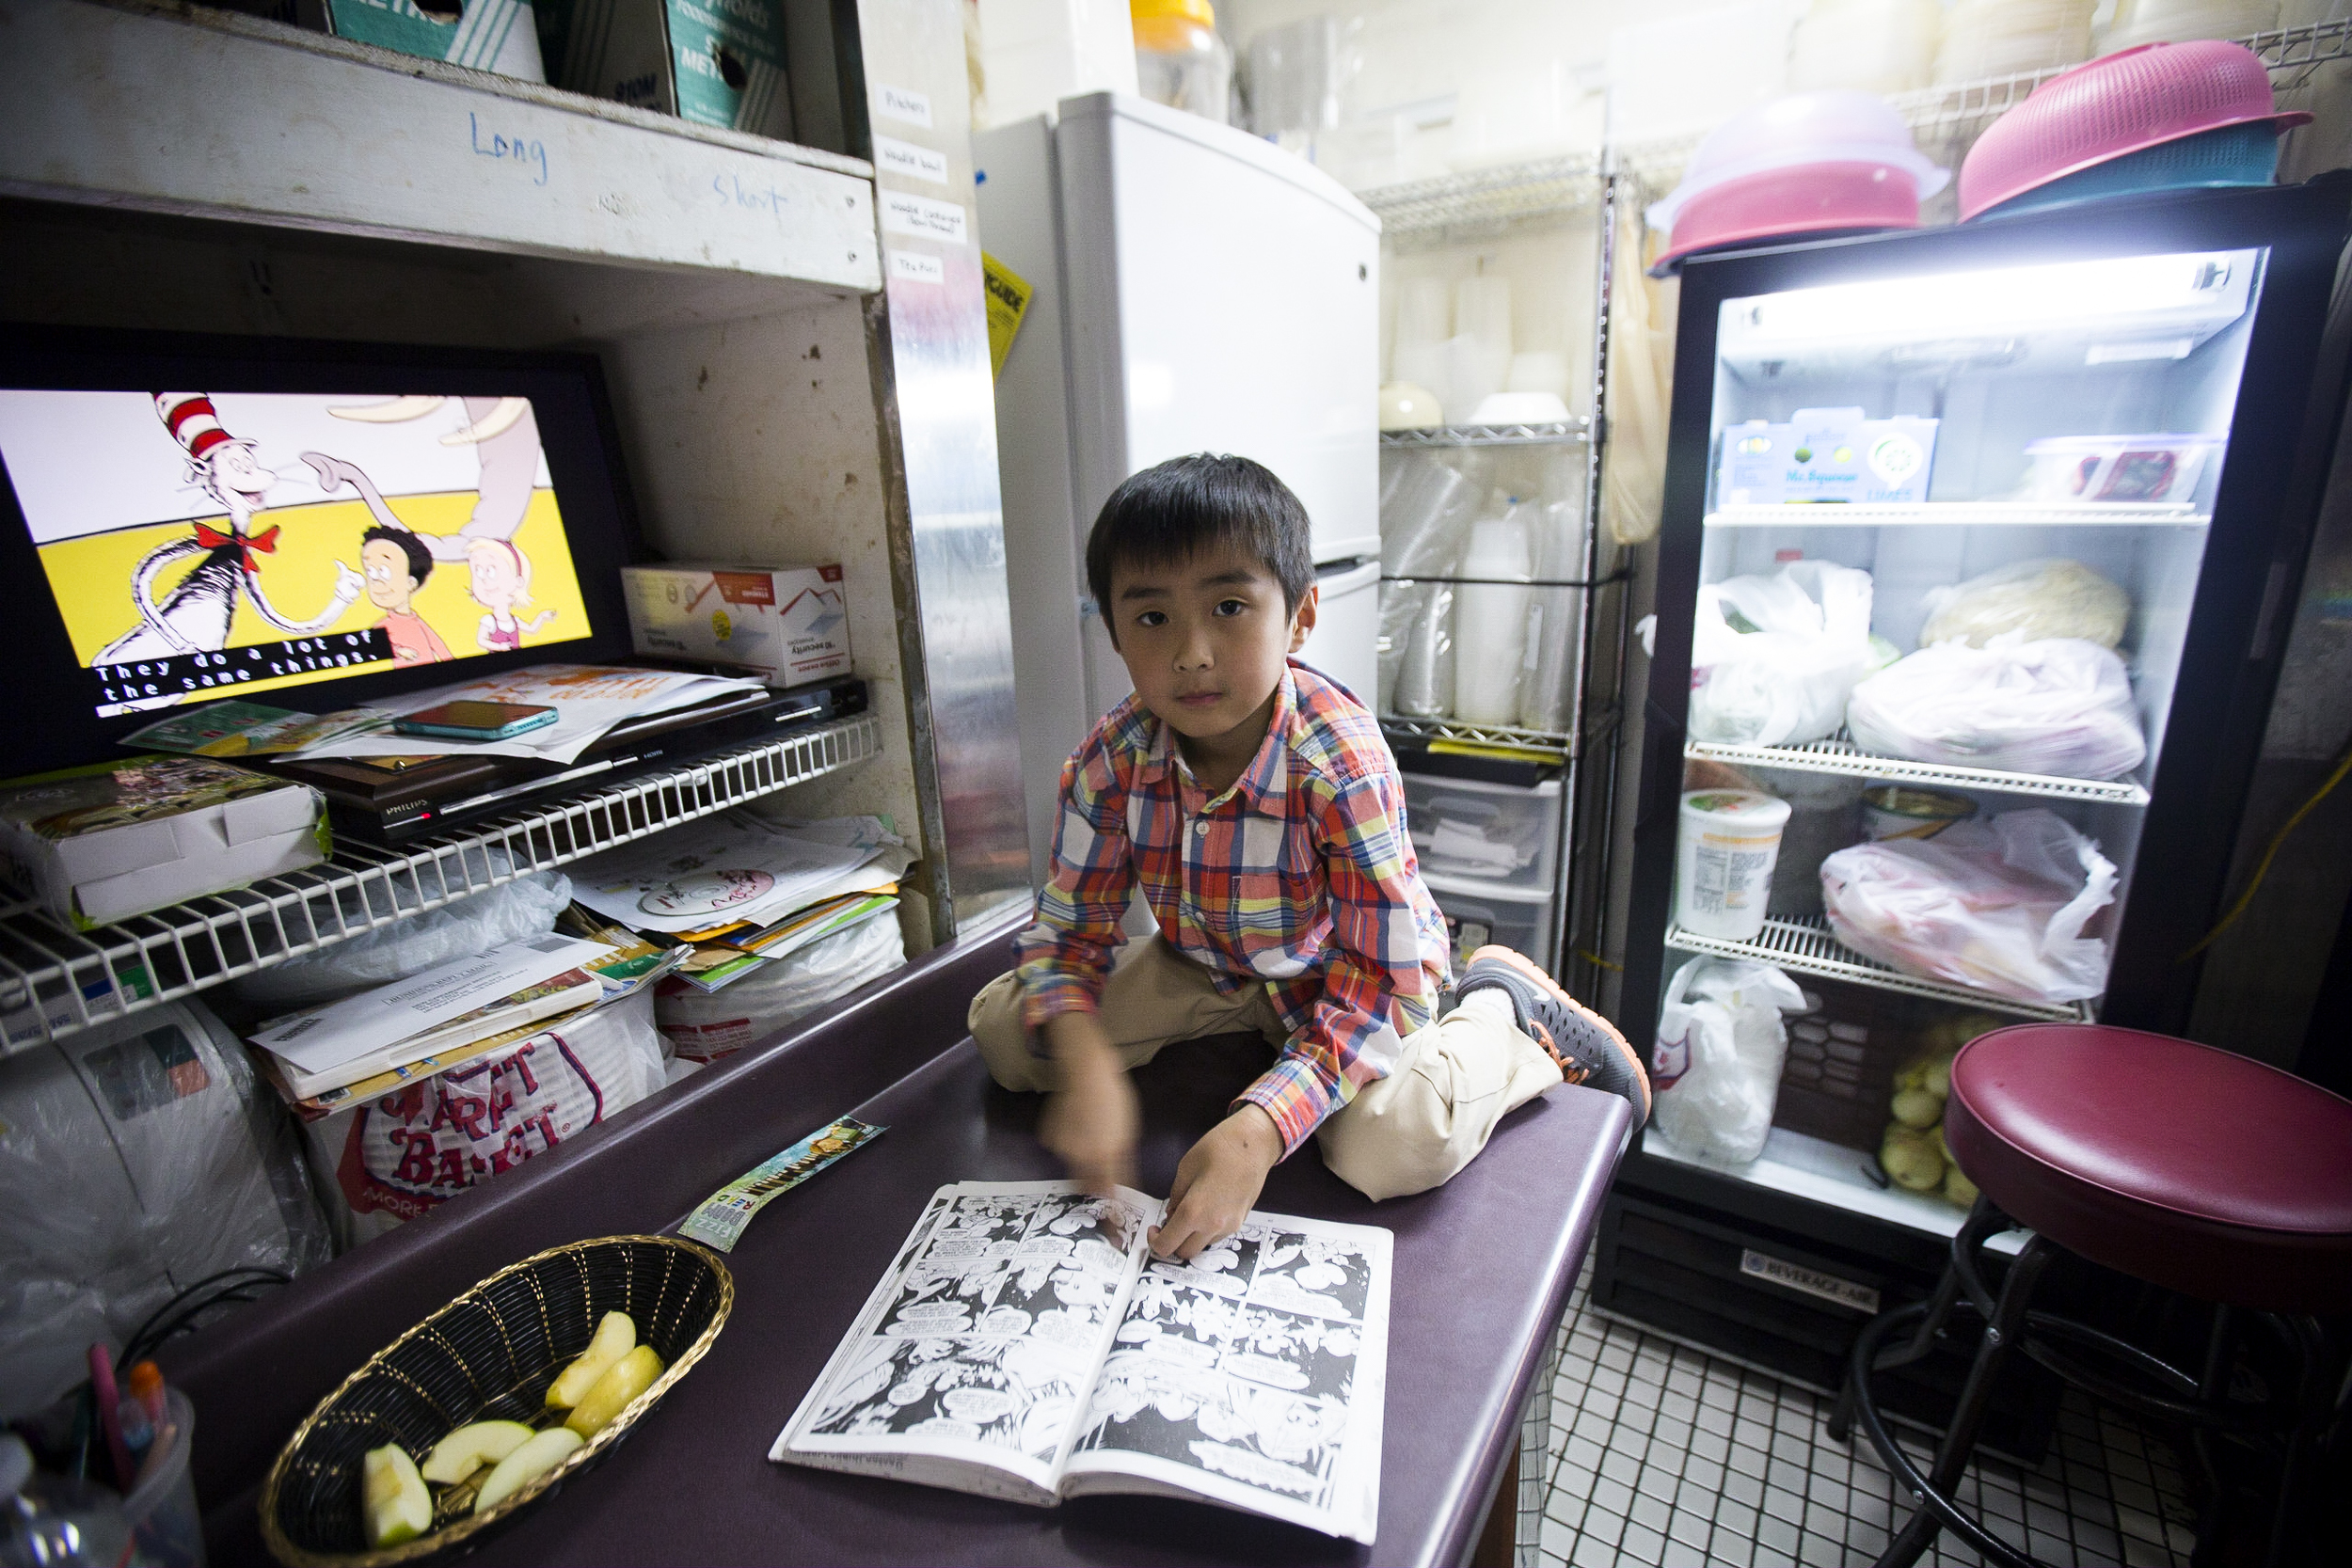 Henry Kyaw, 7. The son of Sai Kyaw reading comic books in a corner of the kitchen at Yoma. By Ann Wang